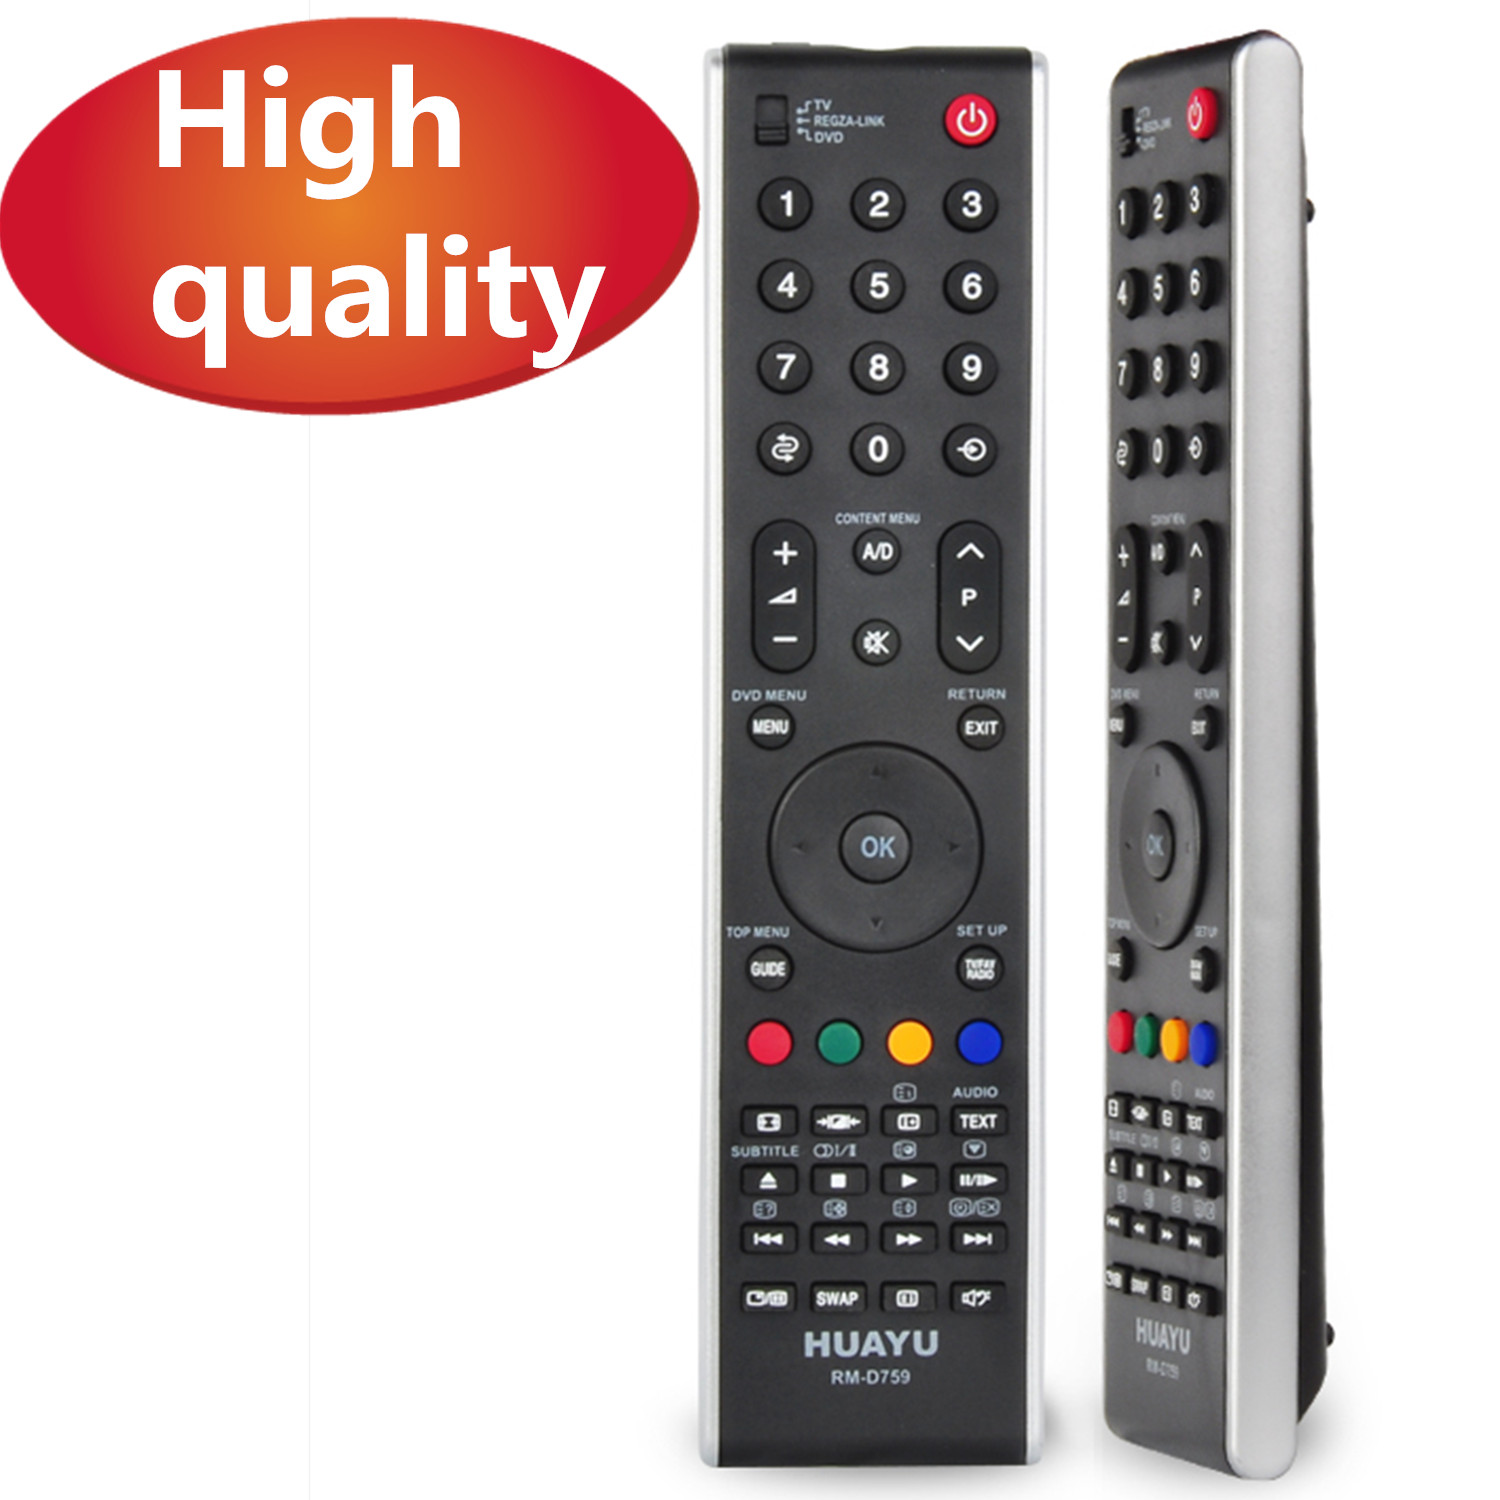 New remote control for toshiba lcd tv ct 90301 ct 90288 ct 90287.